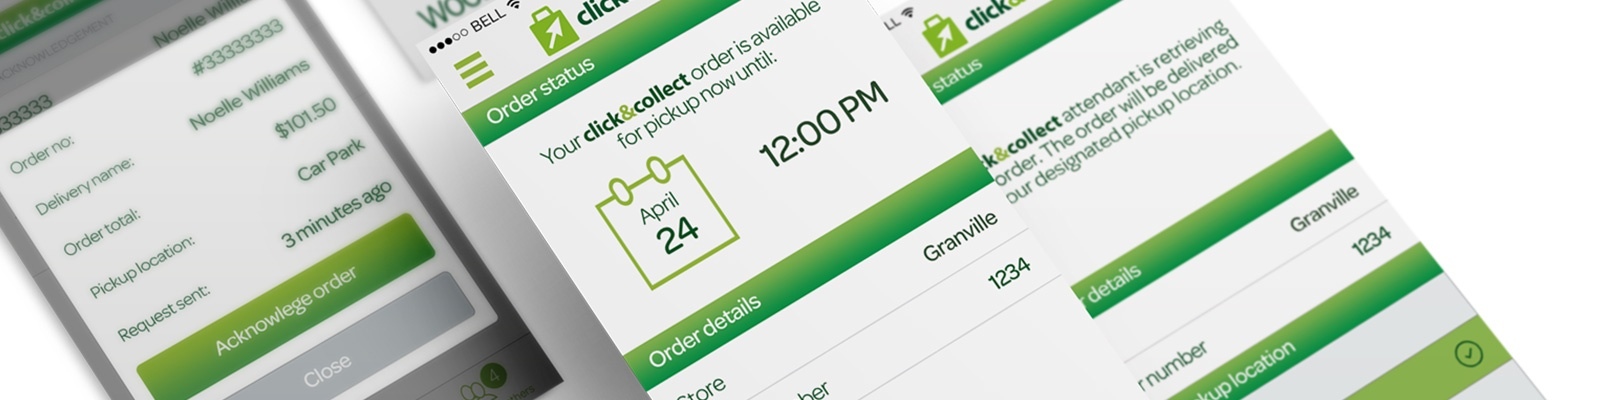 Woolworths order collection customer and attendant app